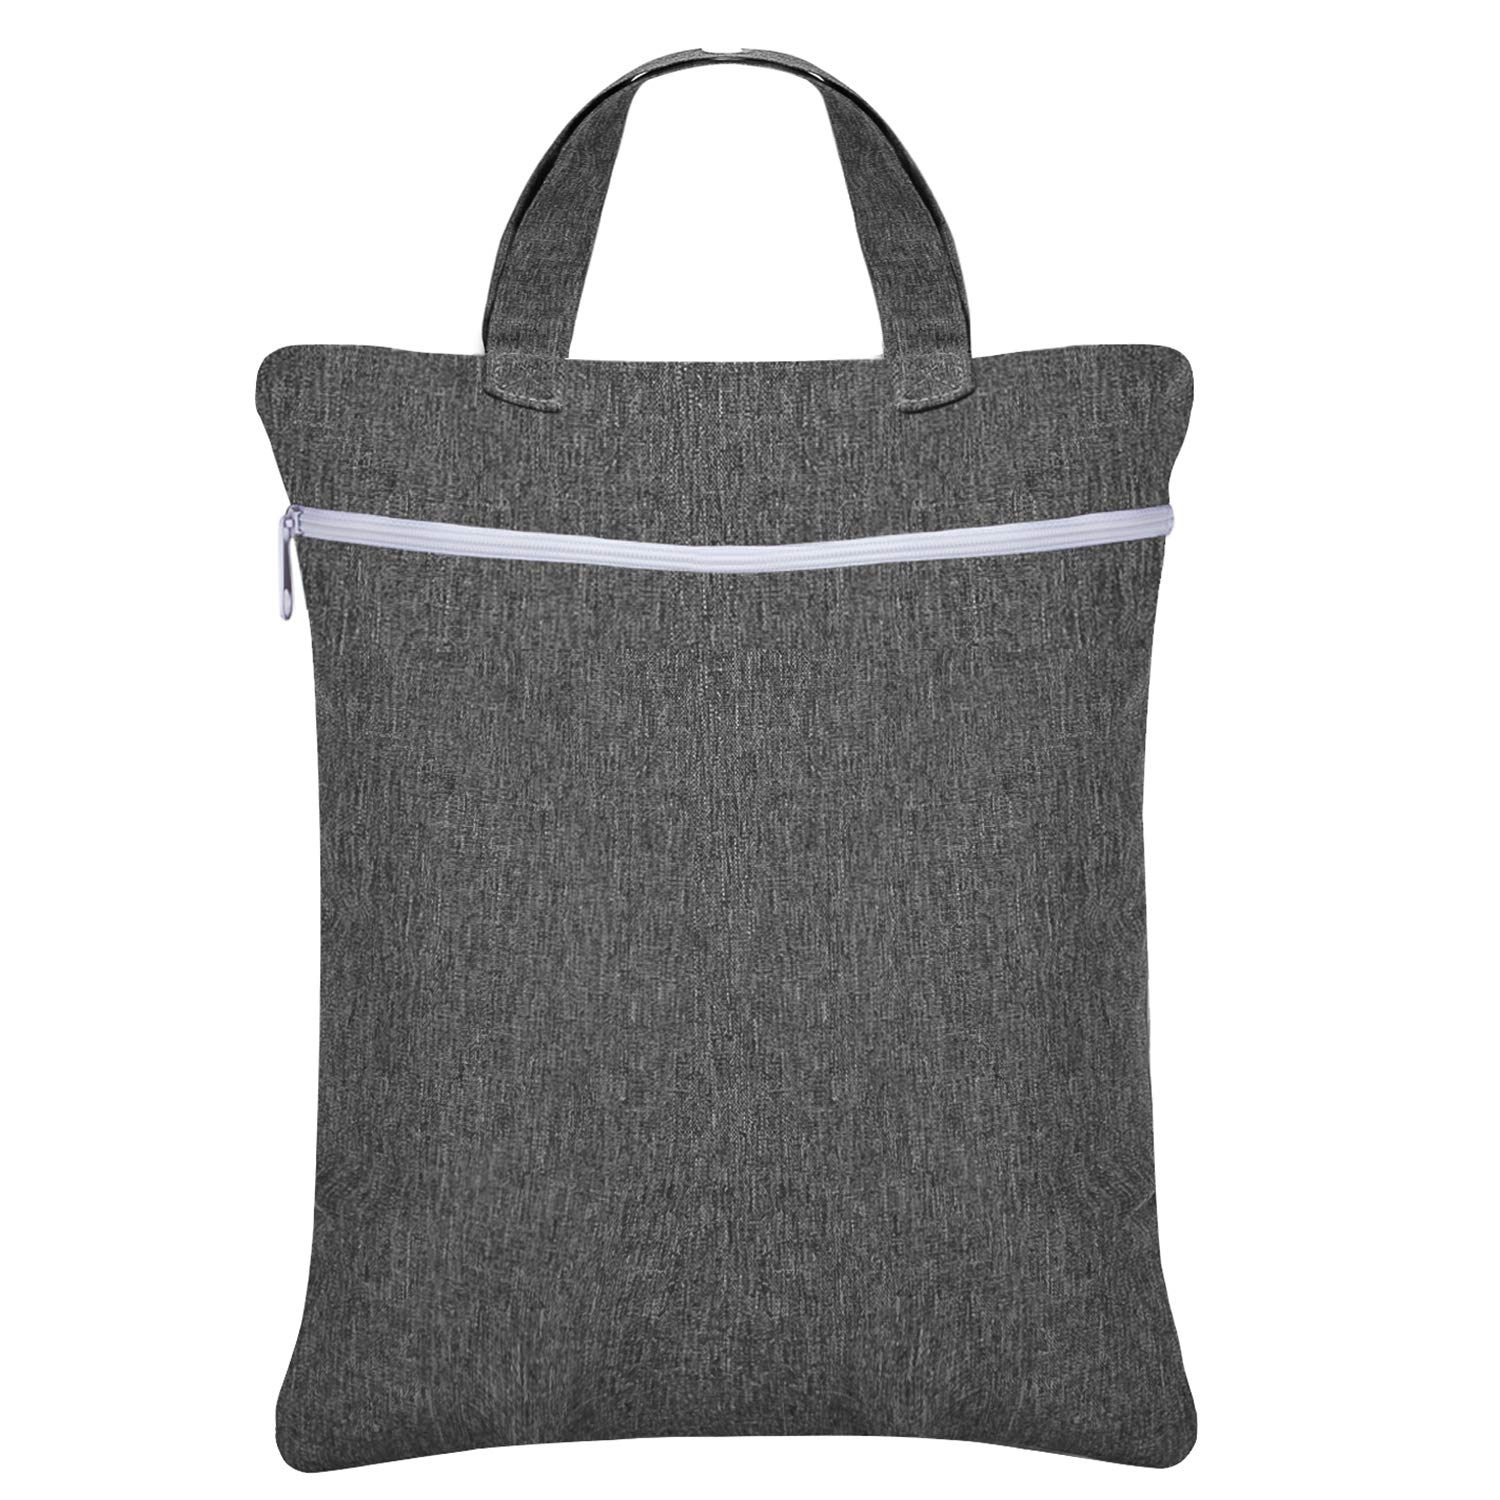 Damero Hanging Wet Dry Bag, Reusable Laundry Wet Bag with Two Compartments for Cloth Diaper and Swimsuit, Small-Gray